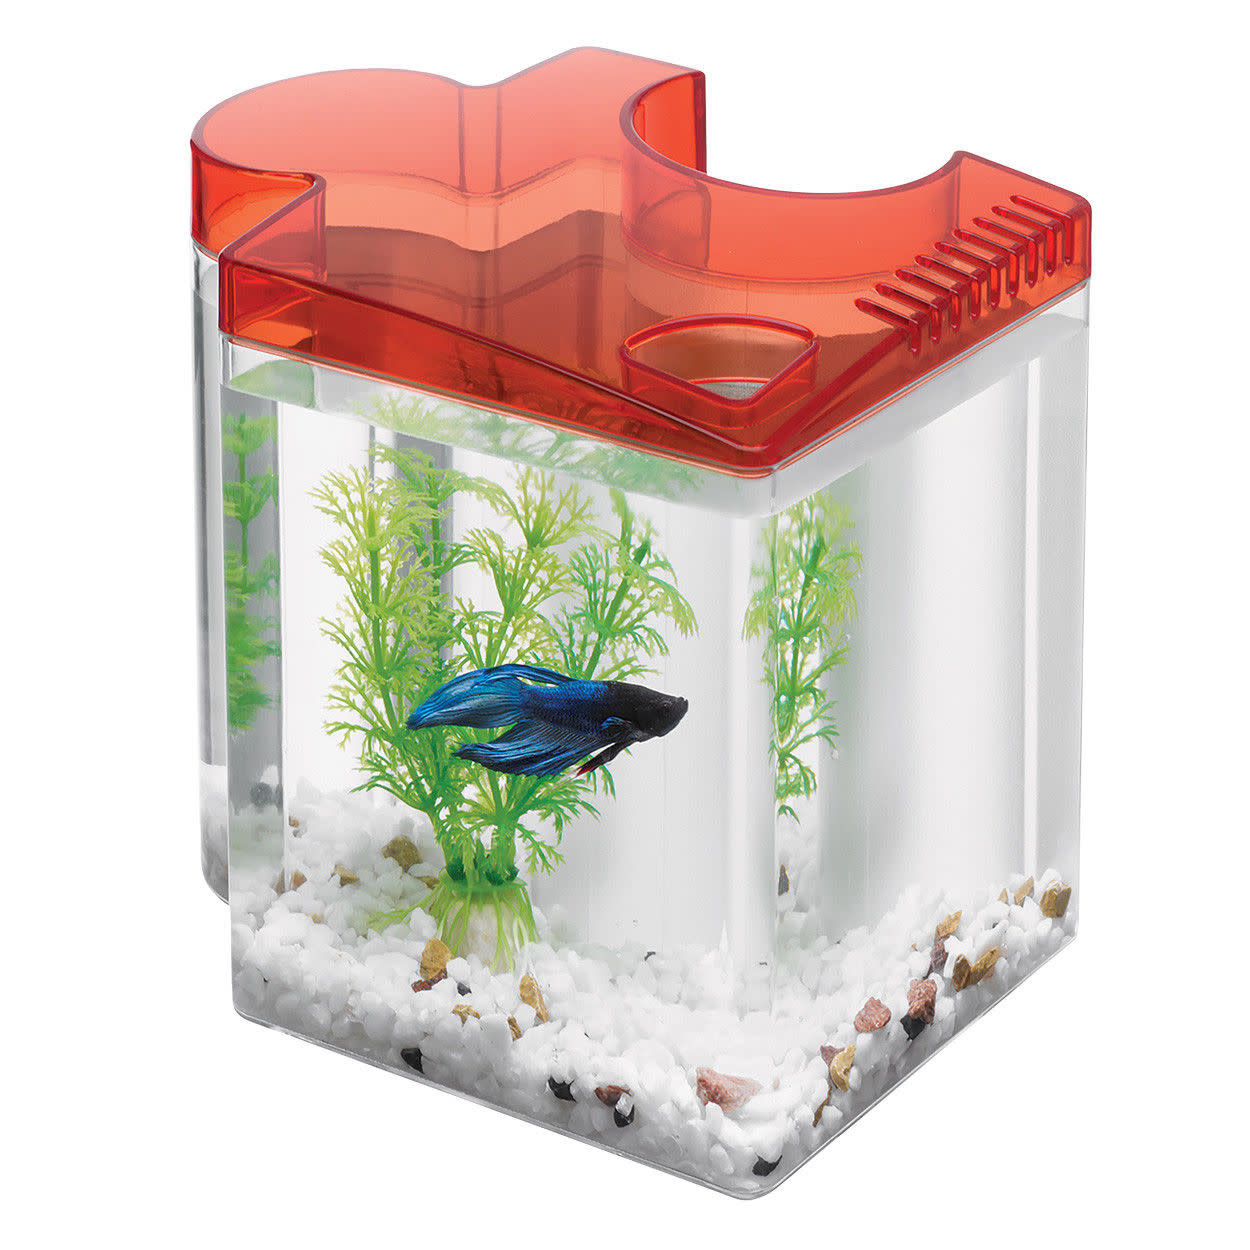 Aqueon Kit Betta Puzzle Red 0.5 Gallon-1